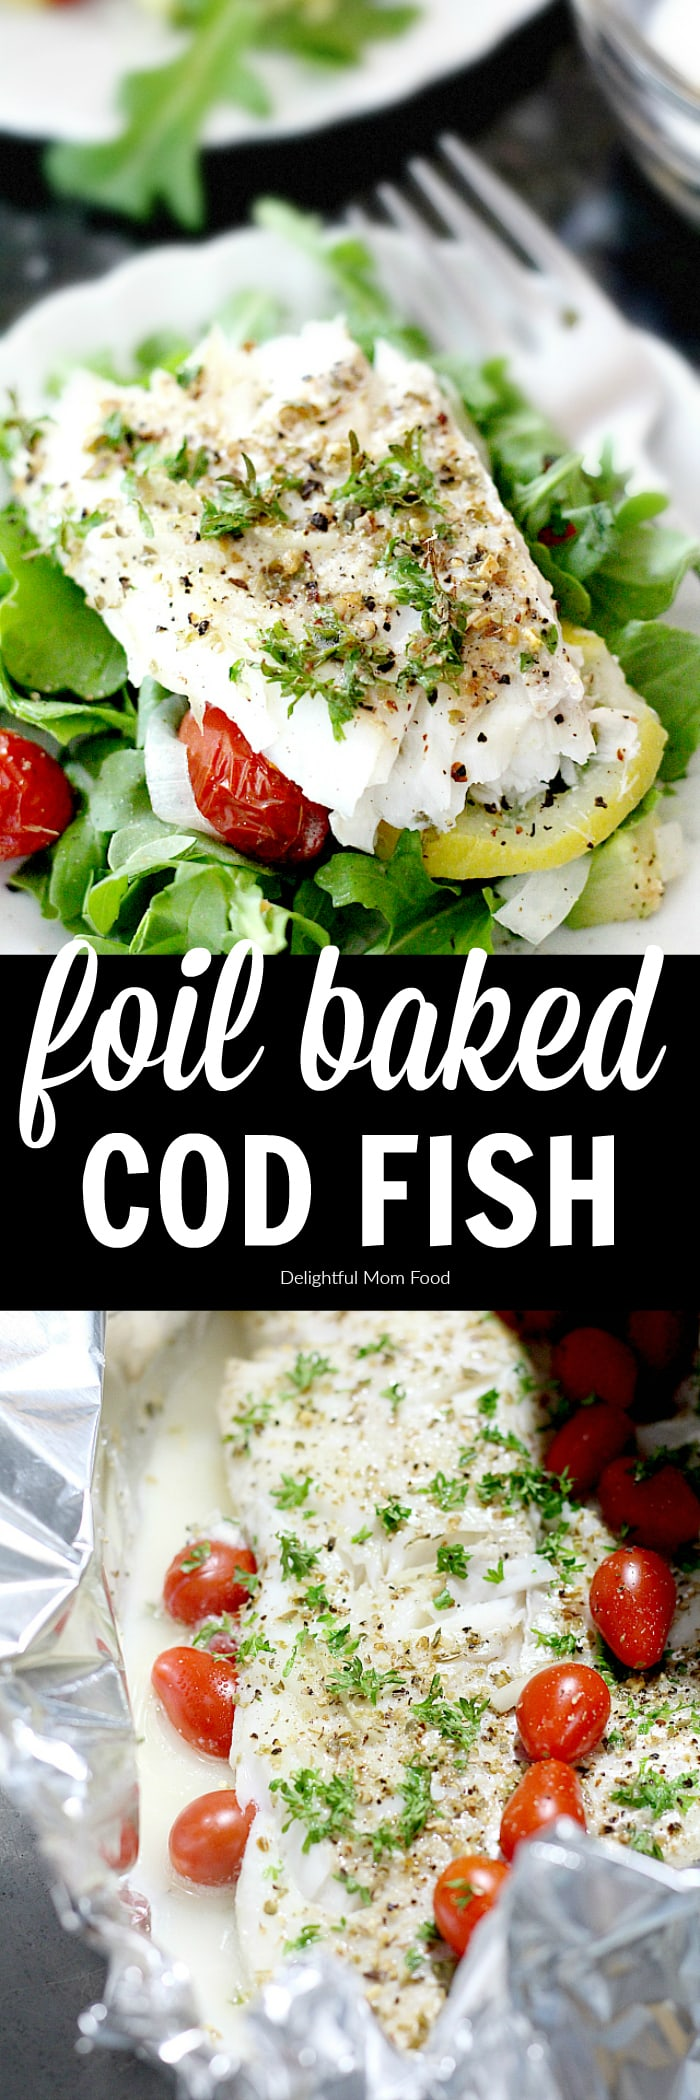 Delicious foil baked Cod fish, cooked with grape tomatoes, lemon and onion.  An easy scrod dish to serve with a side salad or in tacos. | #foil #baked #cod #fish #dinner #healthy #seafood | Recipe at delightfulmomfood.com